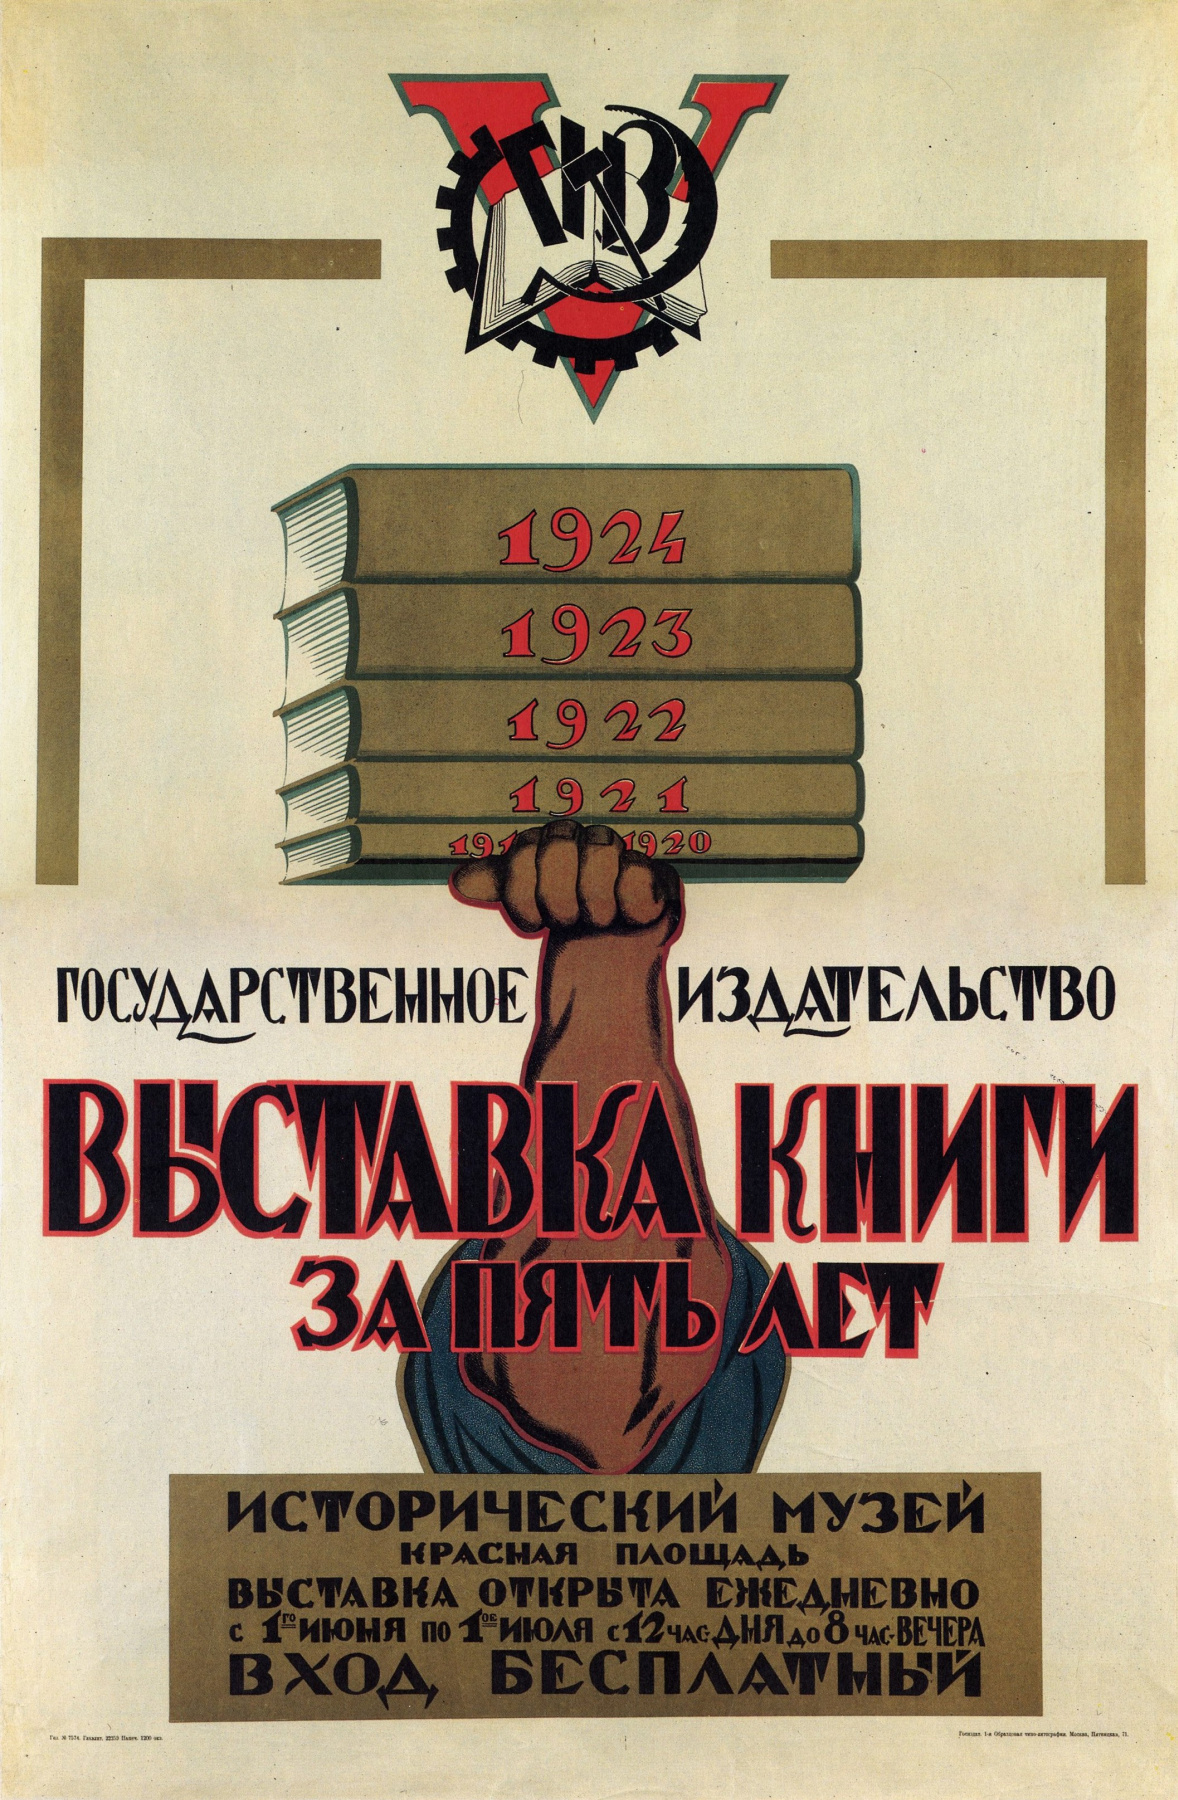 Unknown artist. State publishing house. The exhibition of the book for five years: 1920 - 1924. Historical Museum. the entrance is free